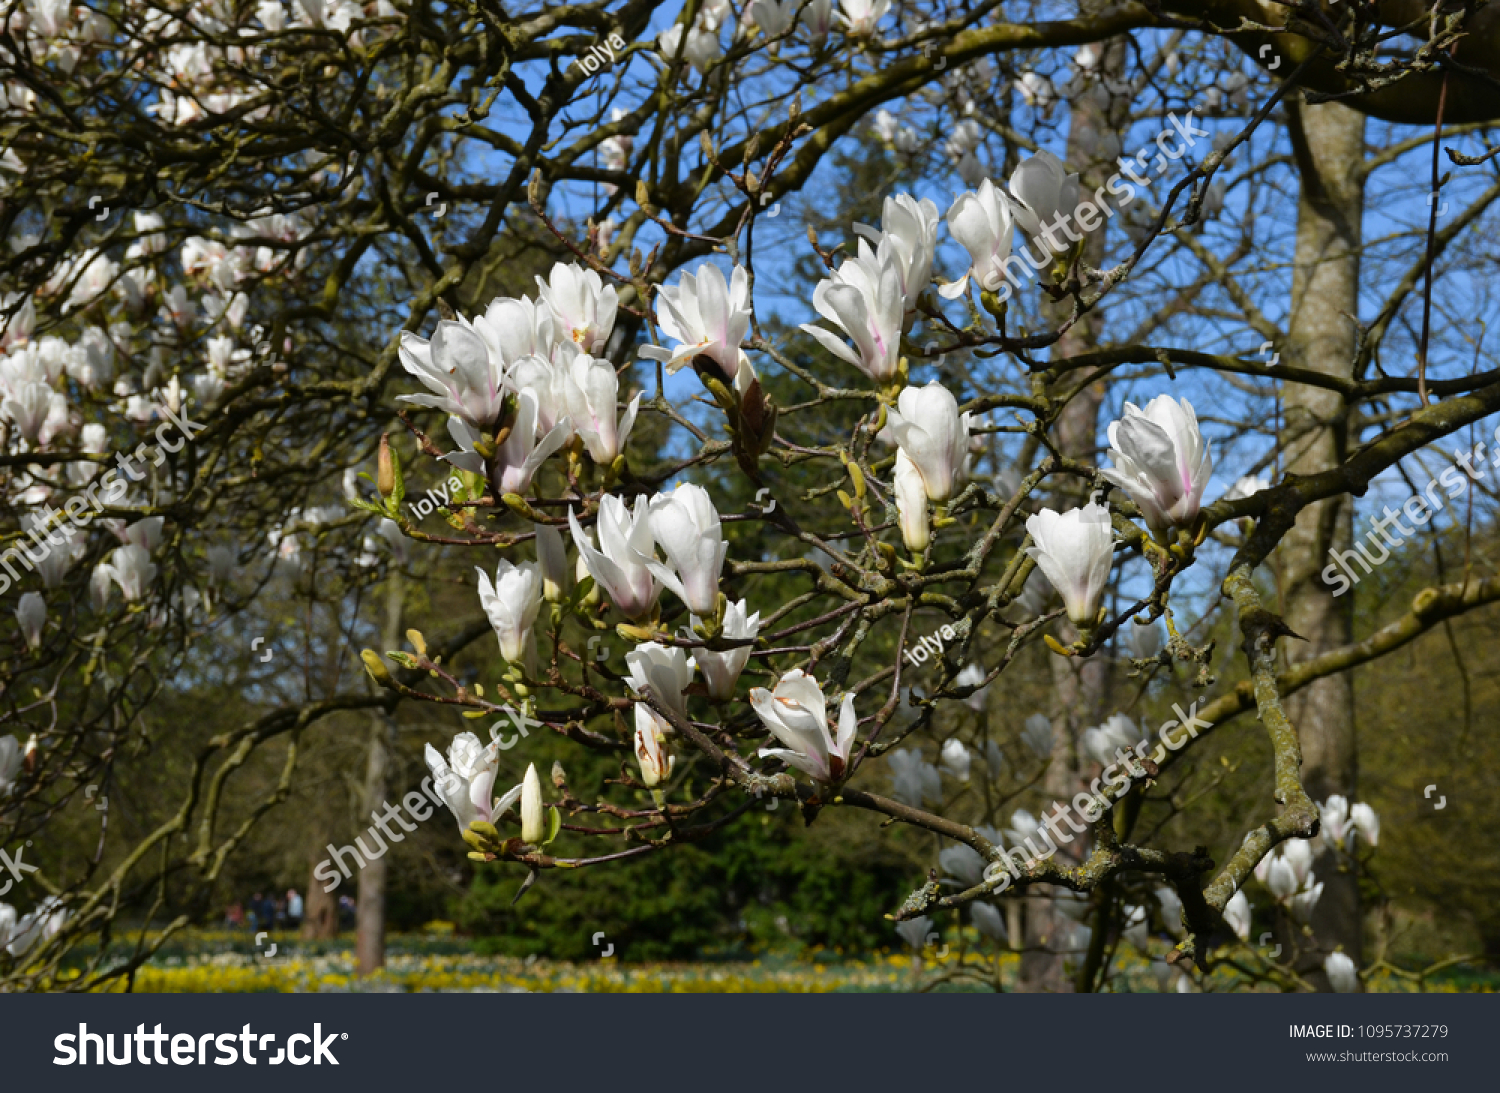 Magnolia Deciduous Tree Large Earlyblooming Flowers Stock Photo